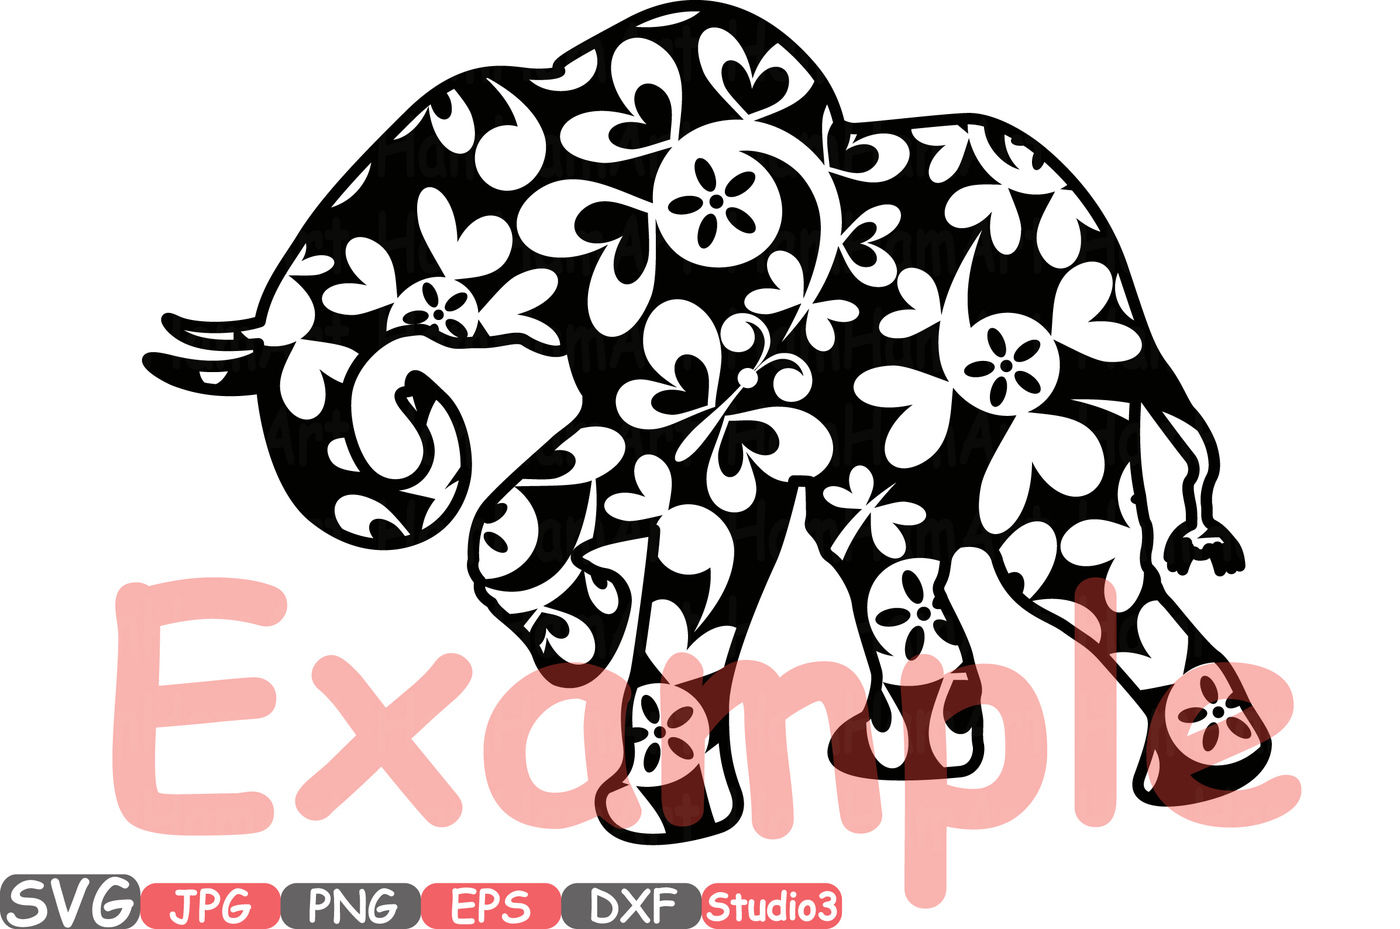 Elephant Safari Mascot Flower Monogram Cutting Files SVG.